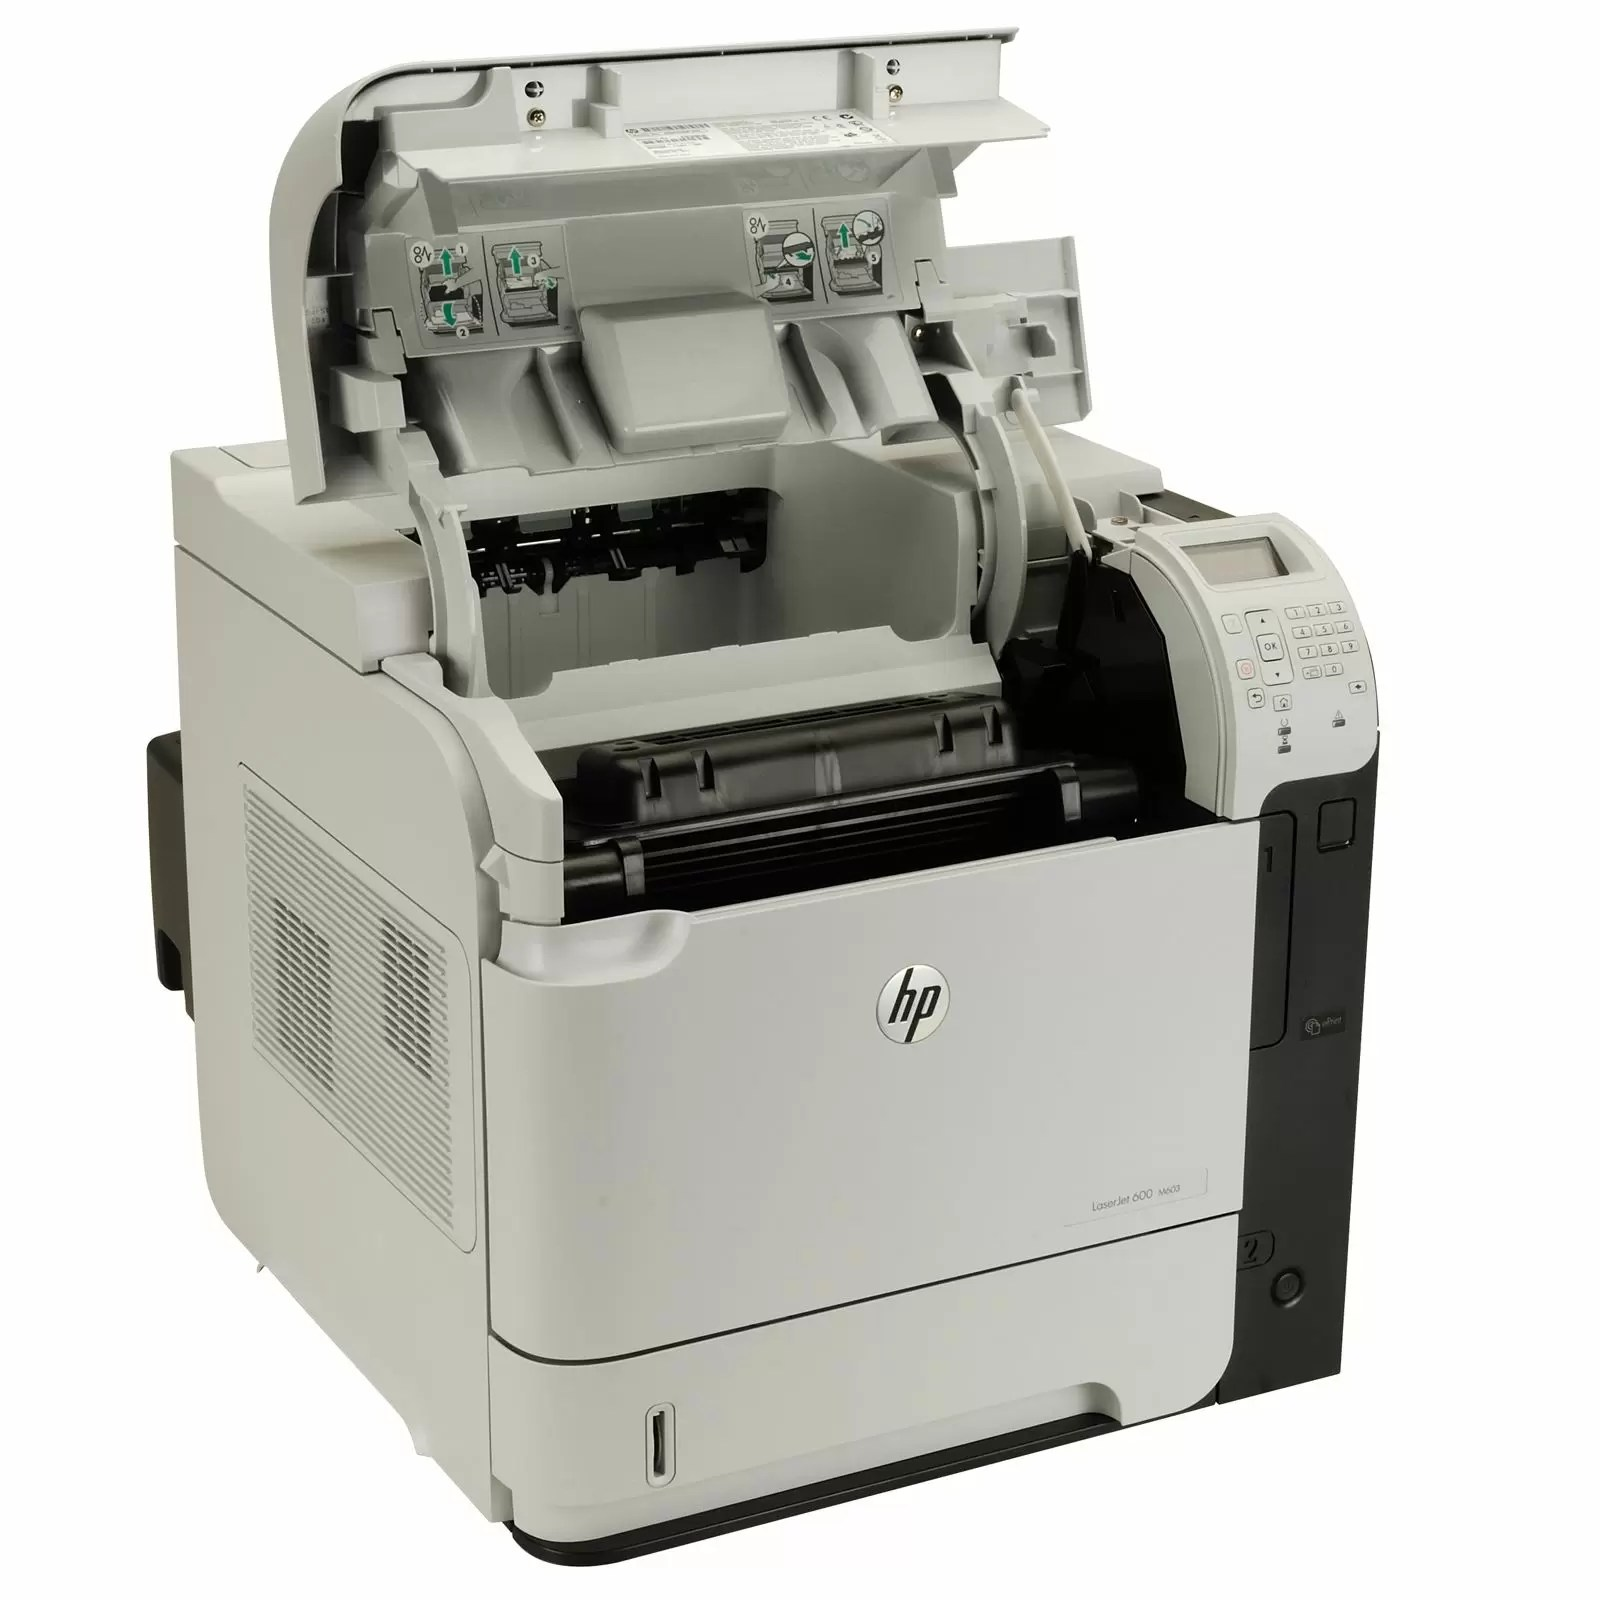 Laserjet 600 M602 Manual